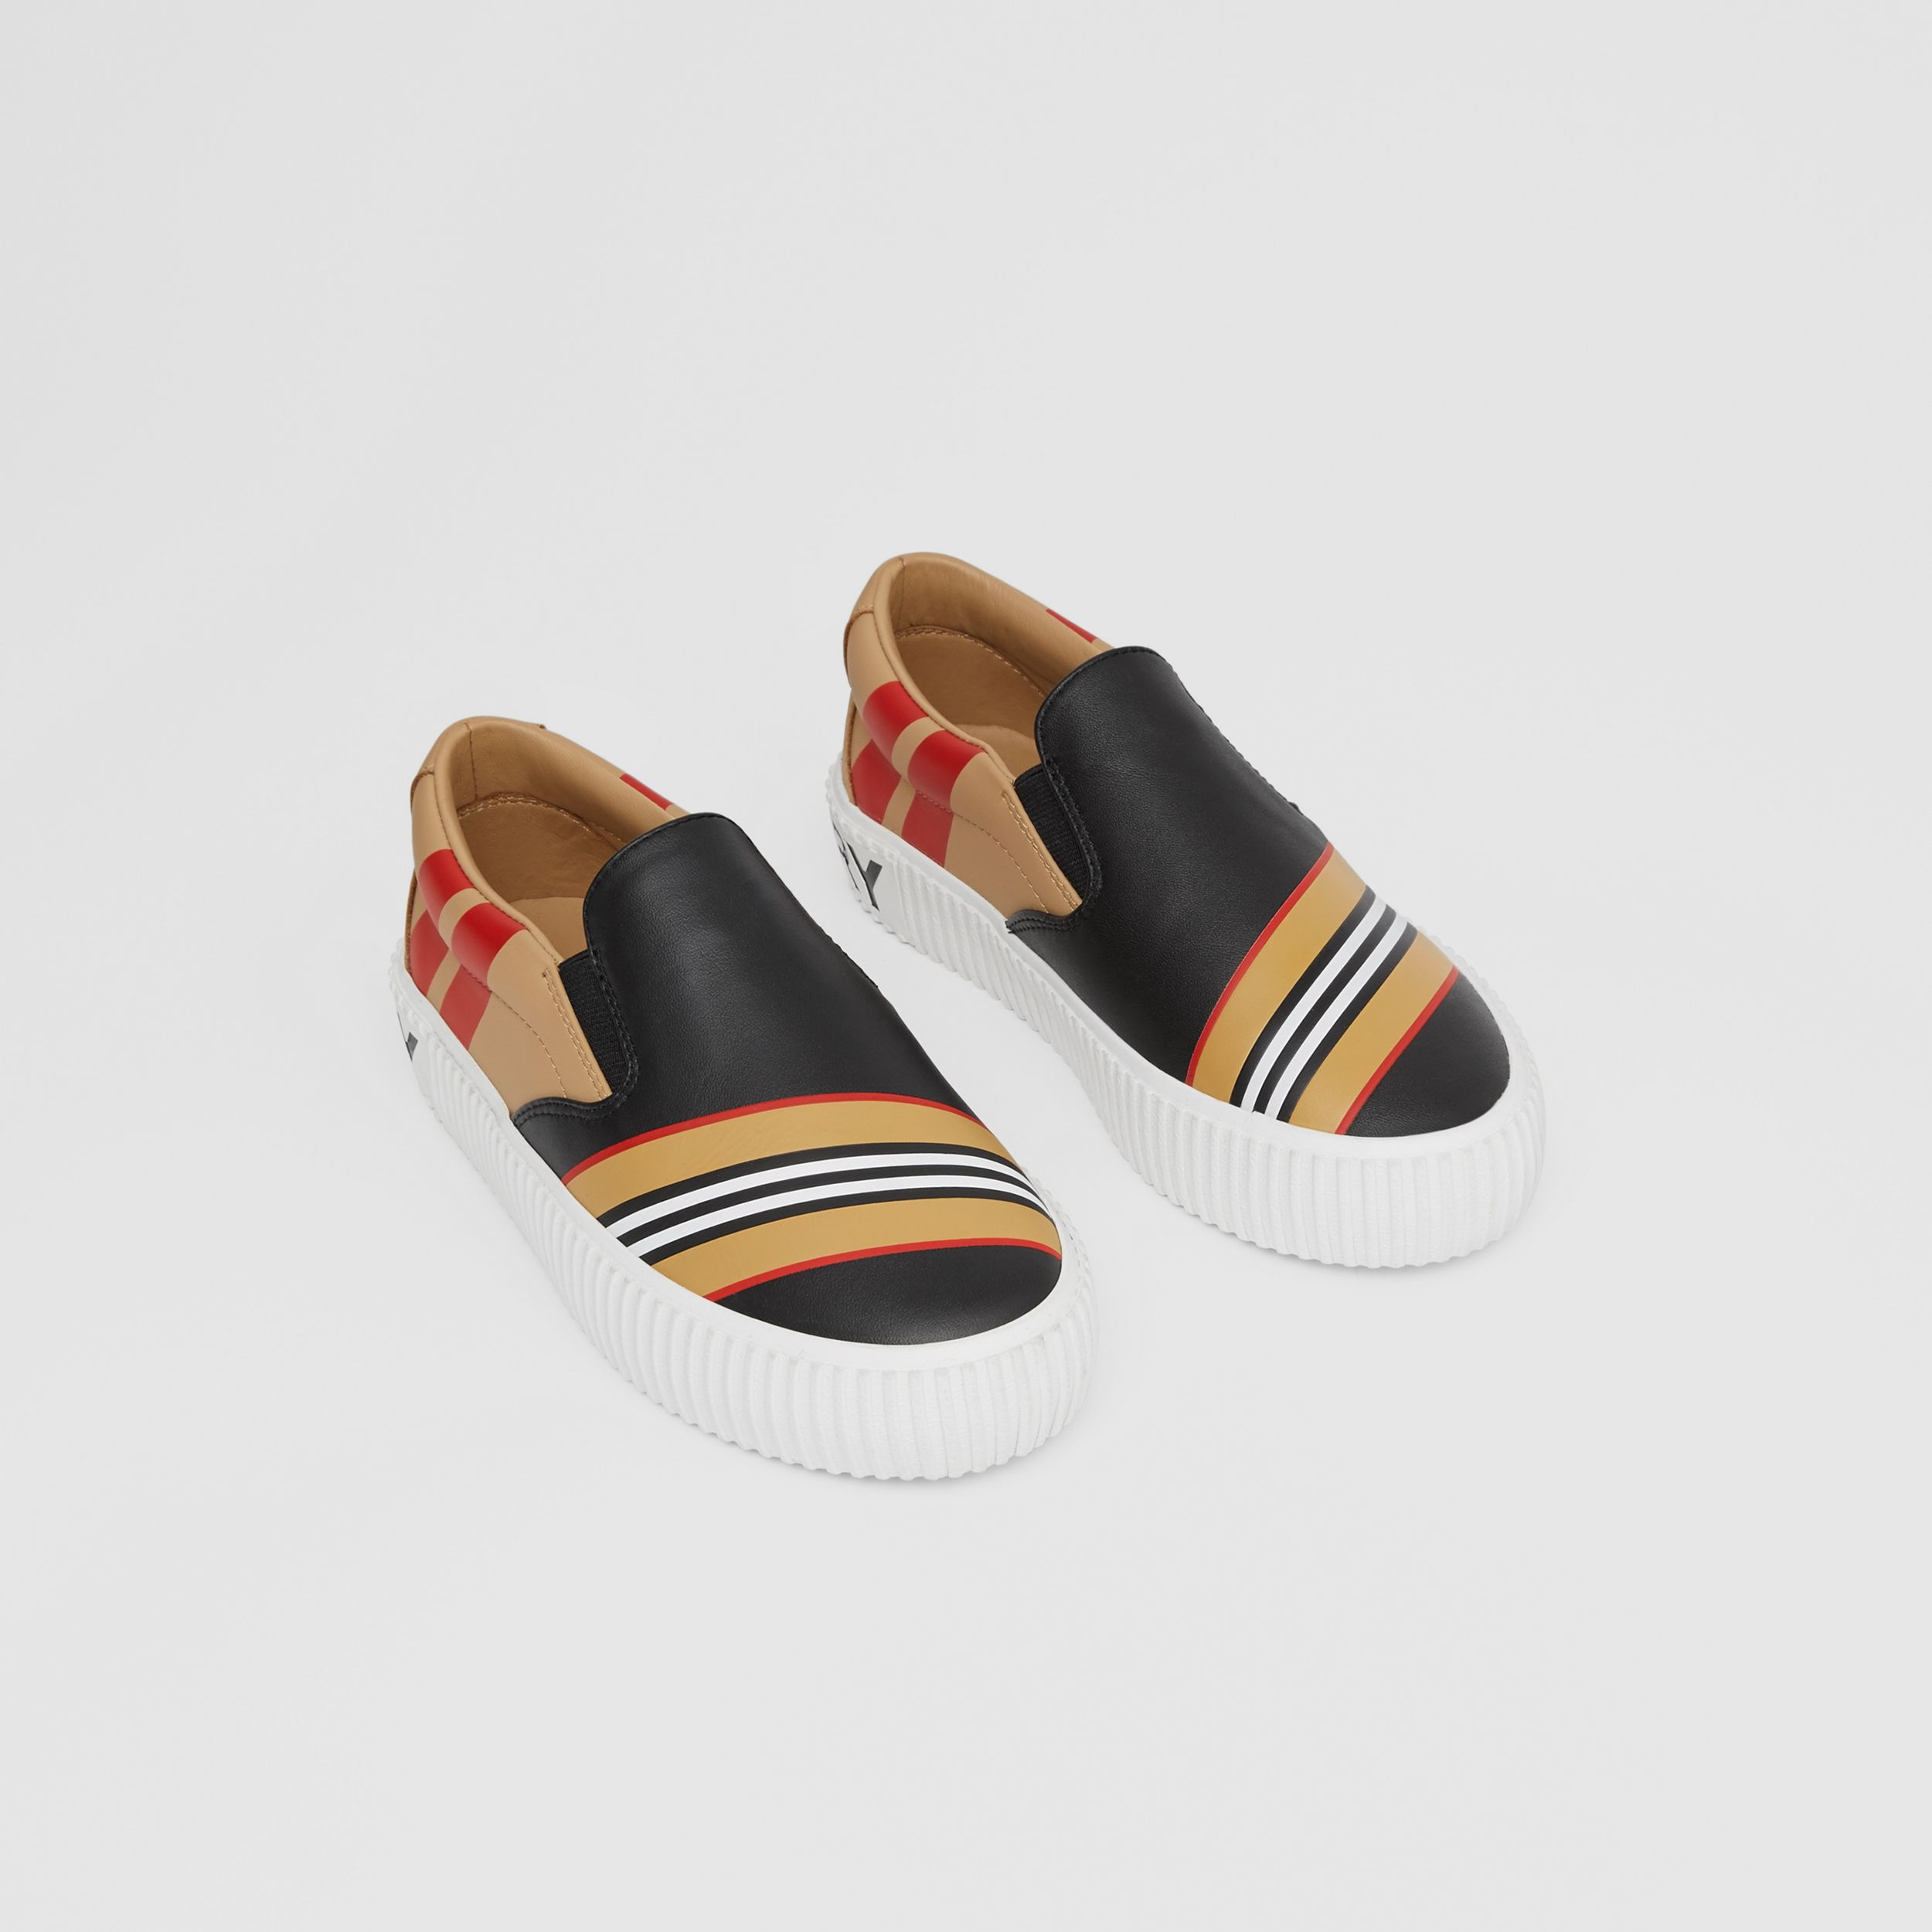 Icon Stripe Print Leather Slip-on Sneakers in Black - Children | Burberry - 1